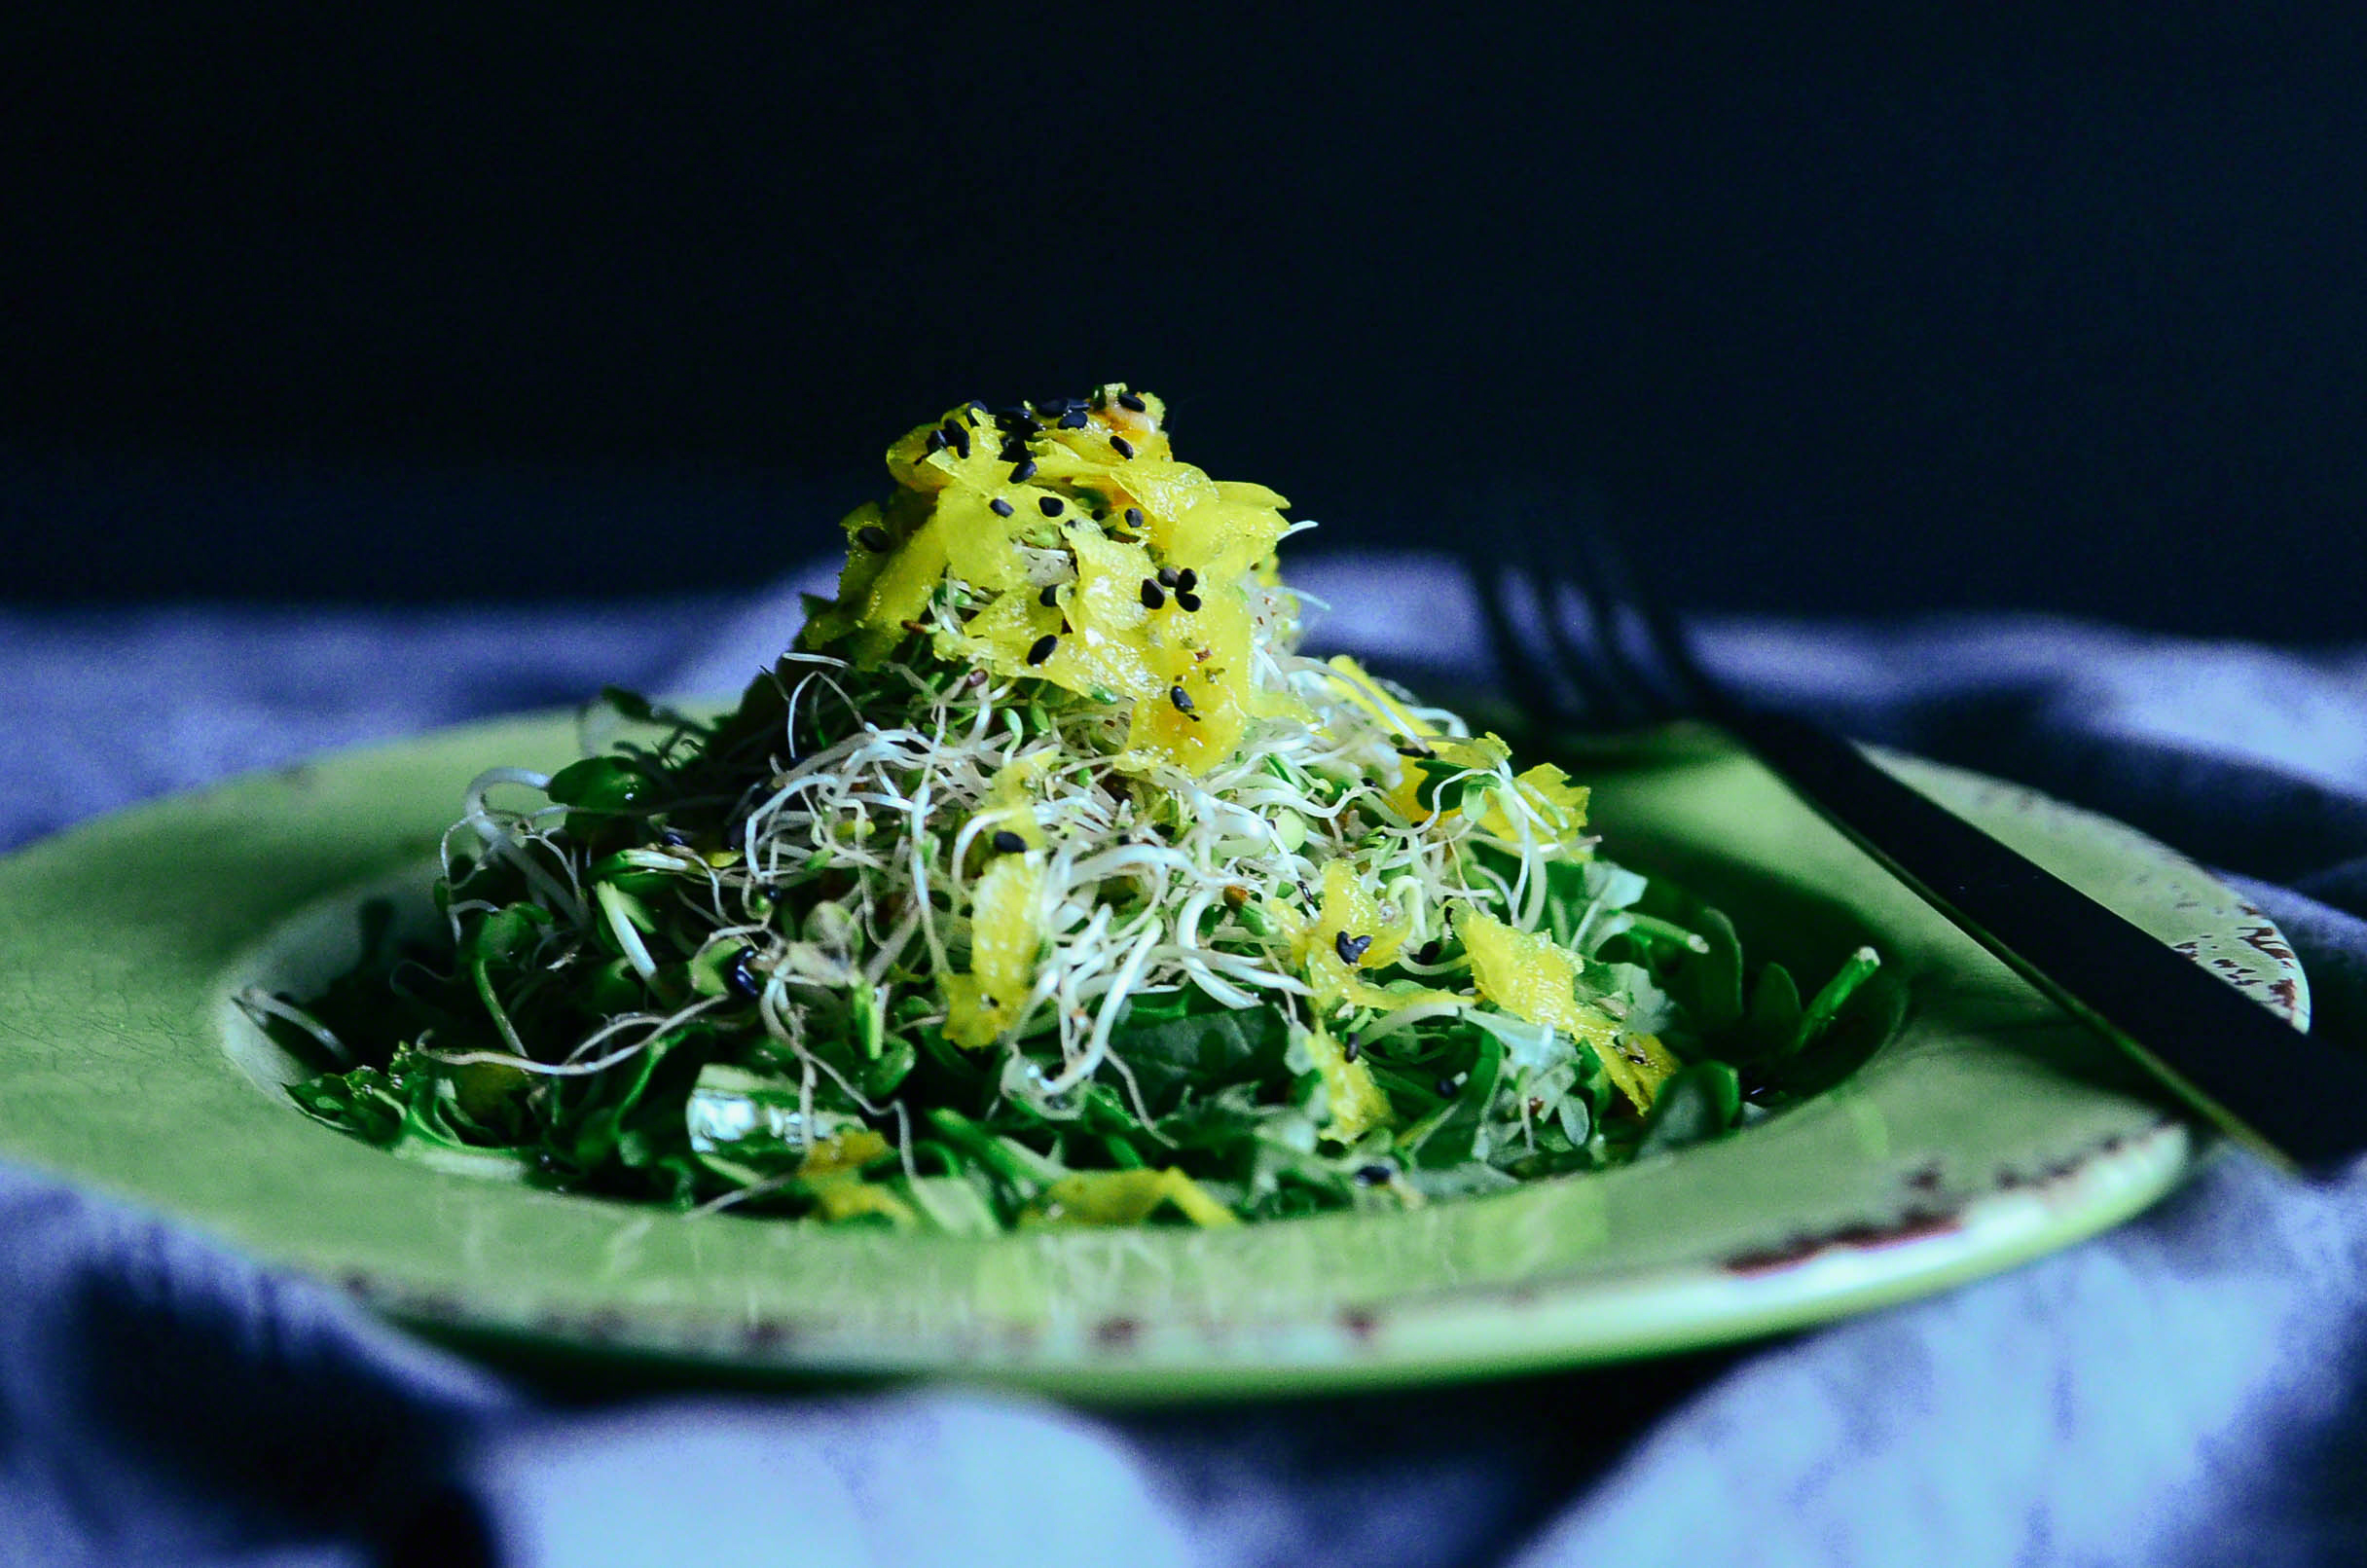 Homemade Alfalfa Sprout and Shaved Golden Beet Salad topped with Sesame Garlic Dressing